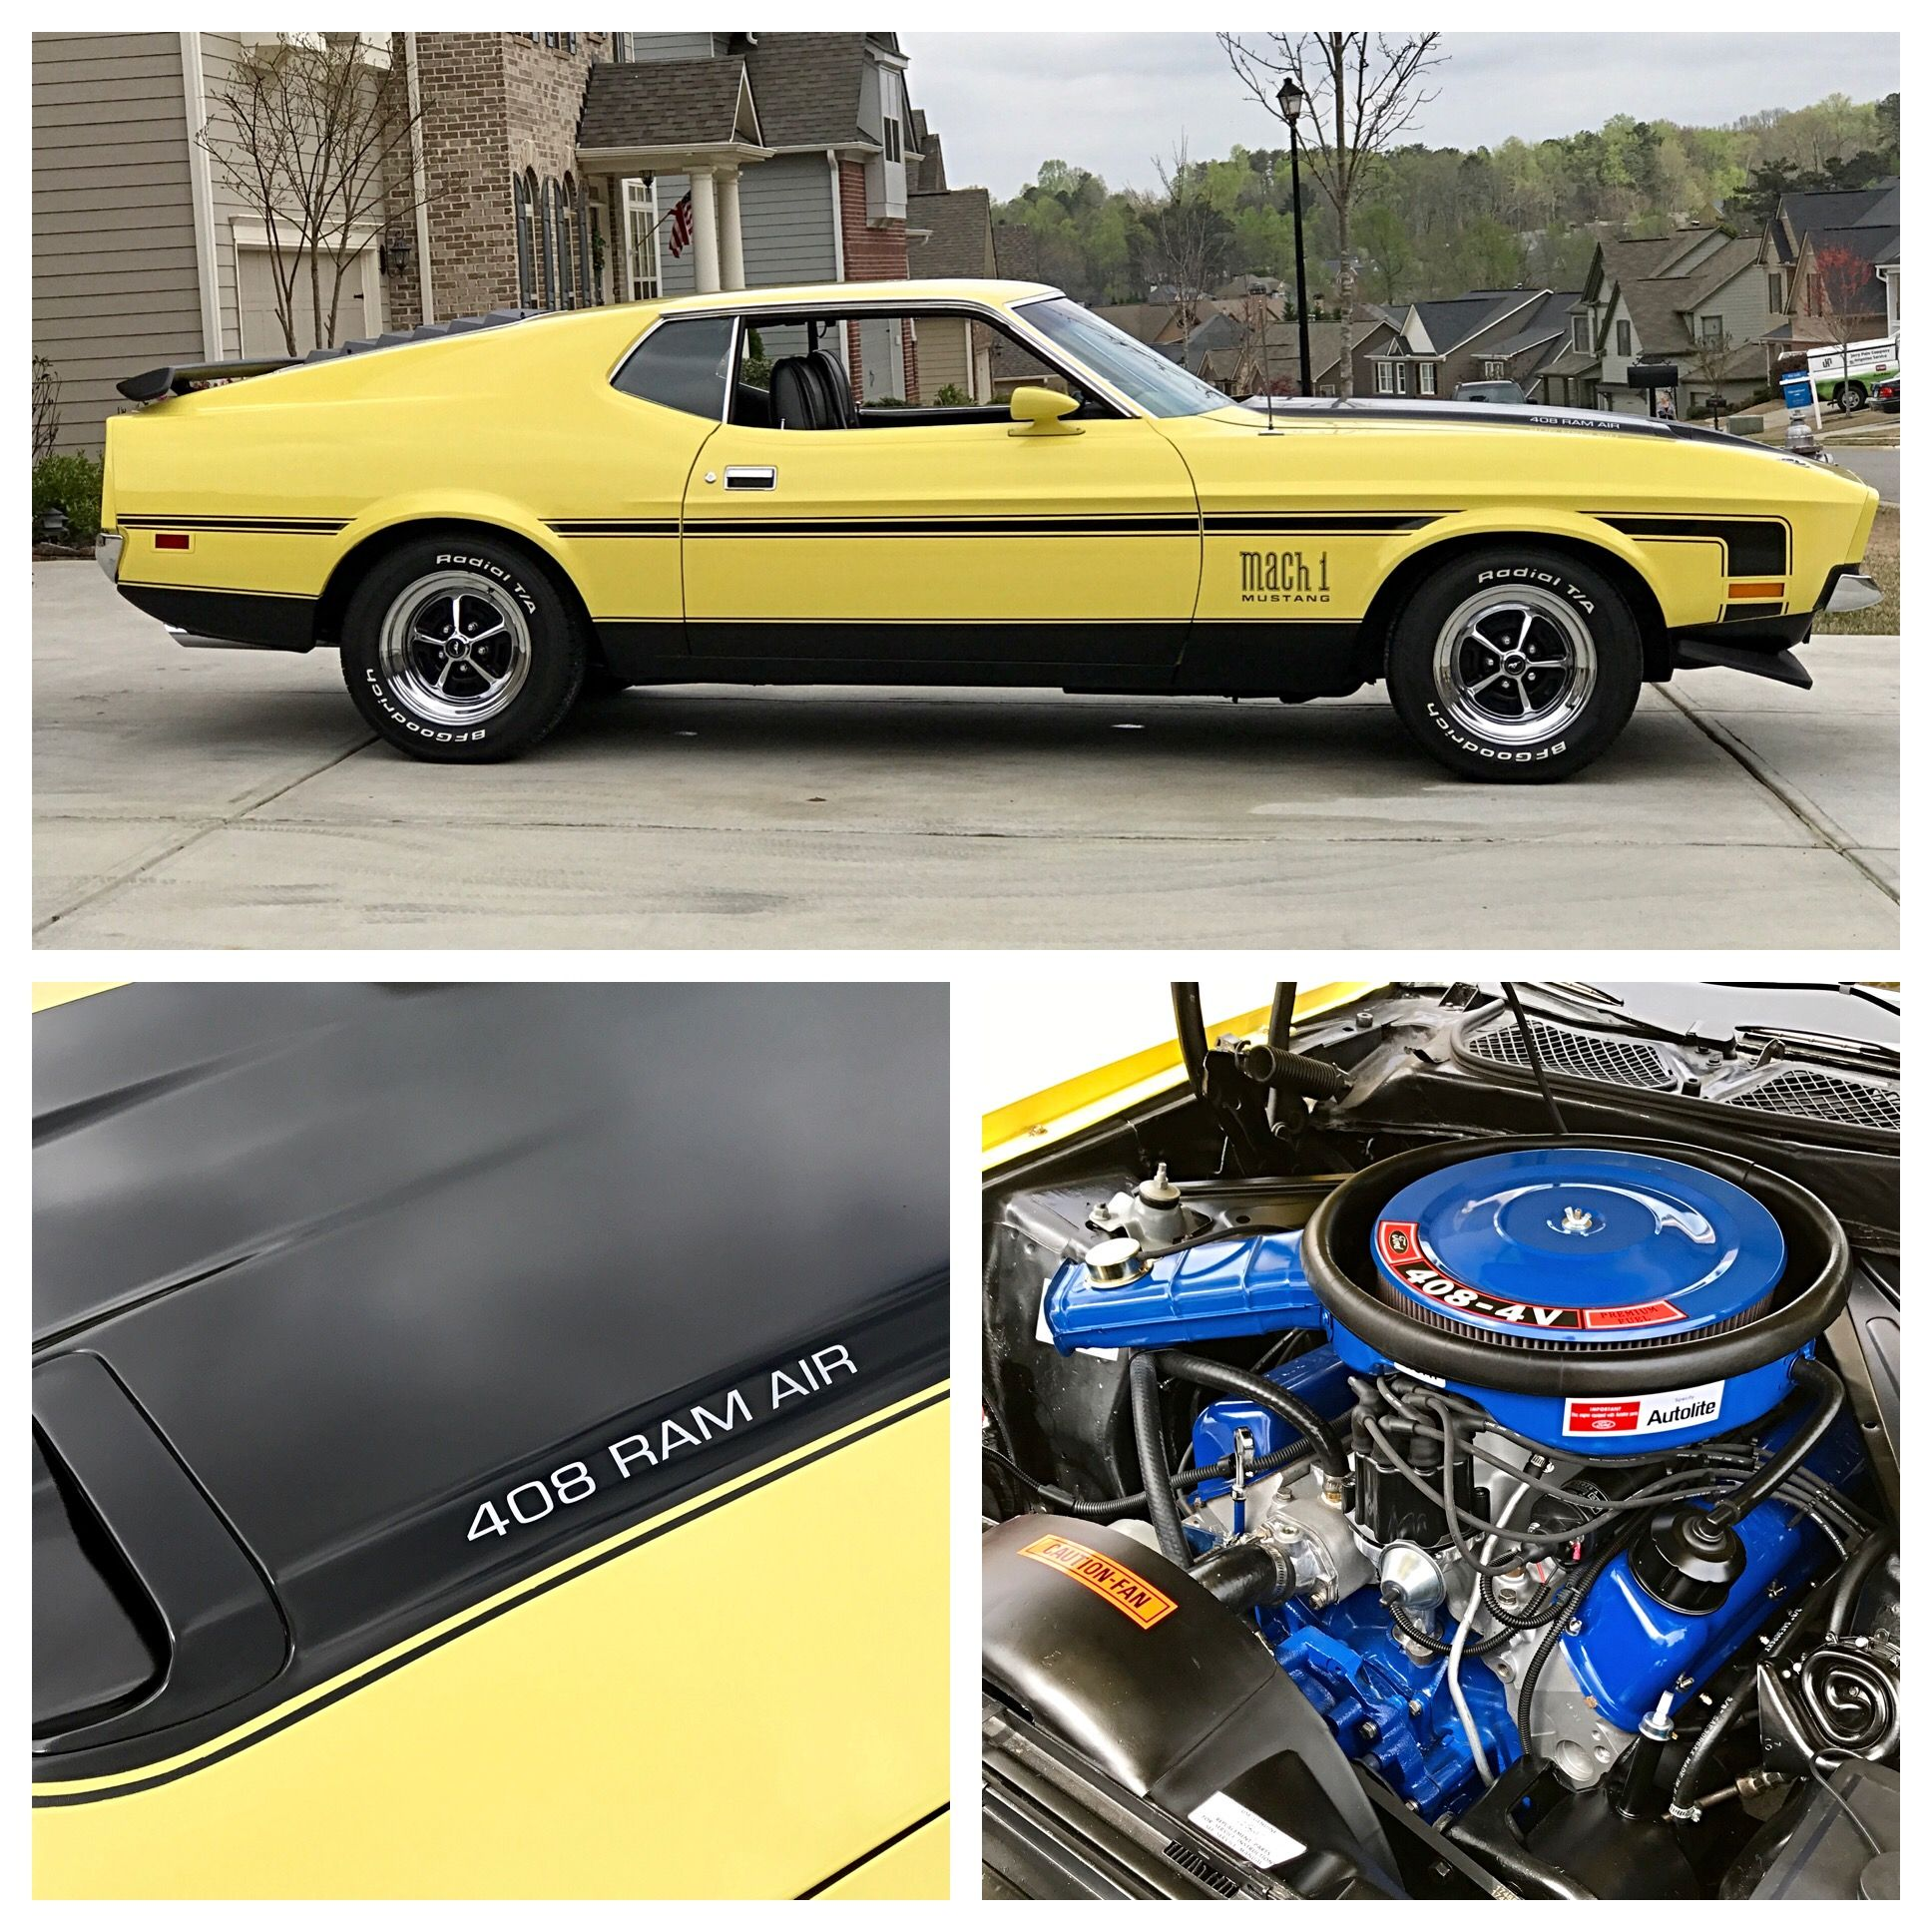 1971 Mustang Mach 1 408 Stroker, 4speed manual, aluminum